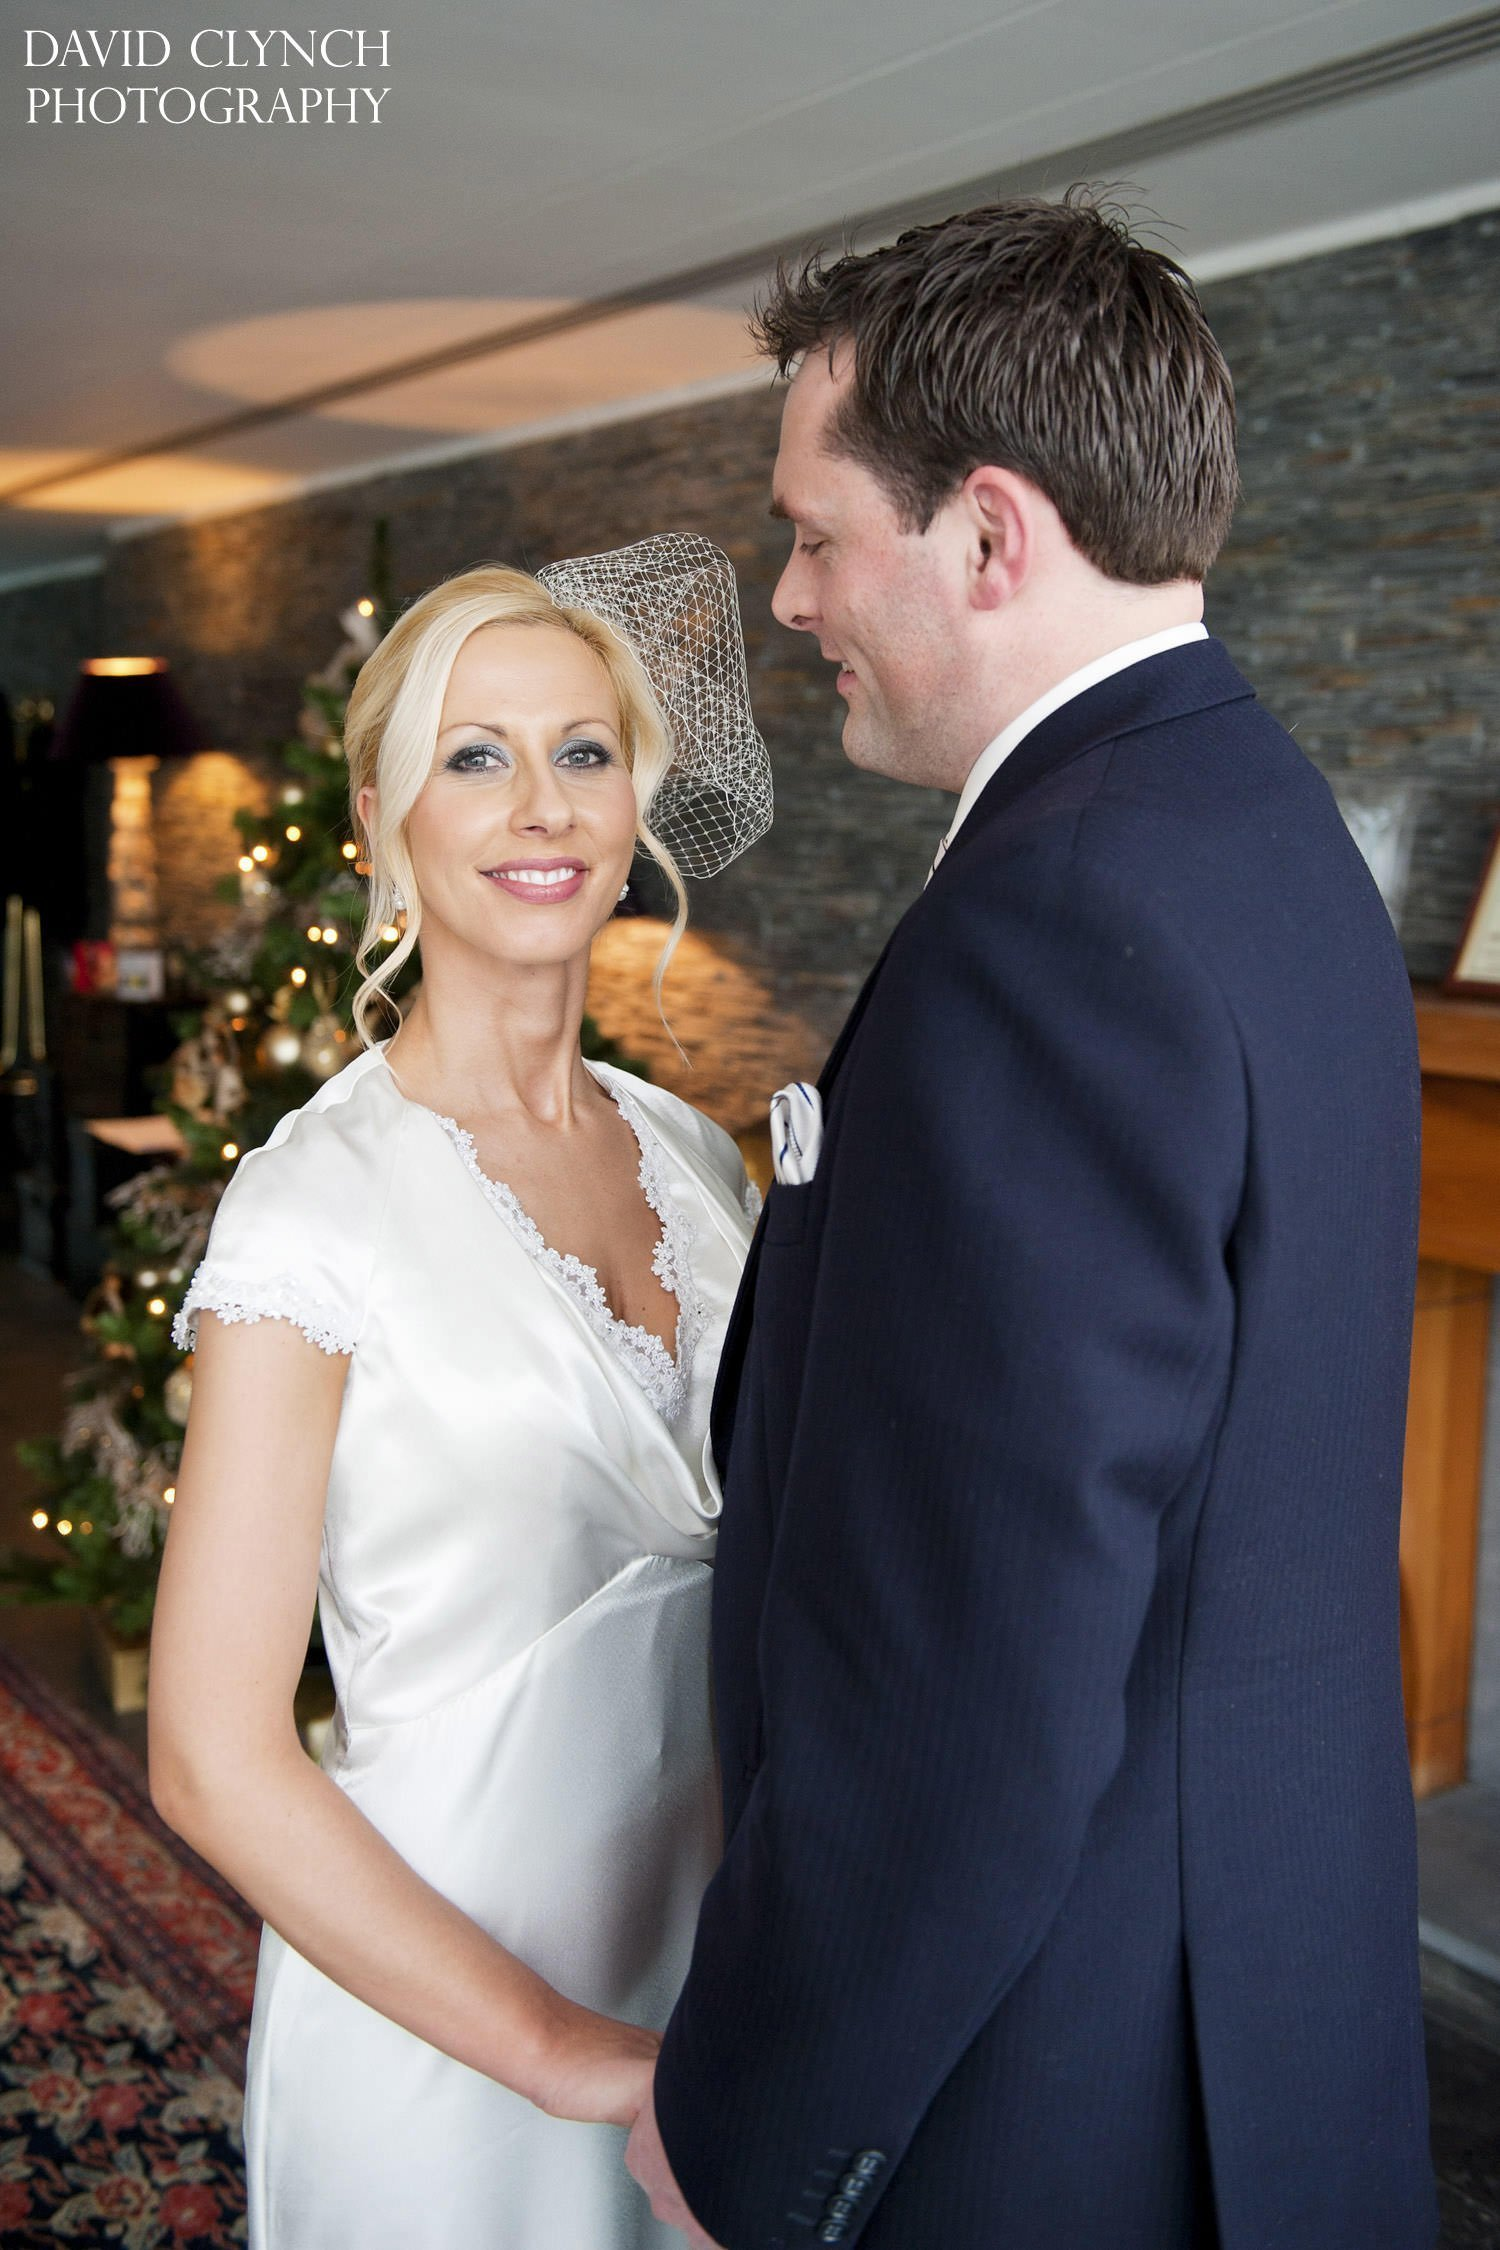 Cliff House Hotel Wedding Photographer Waterford